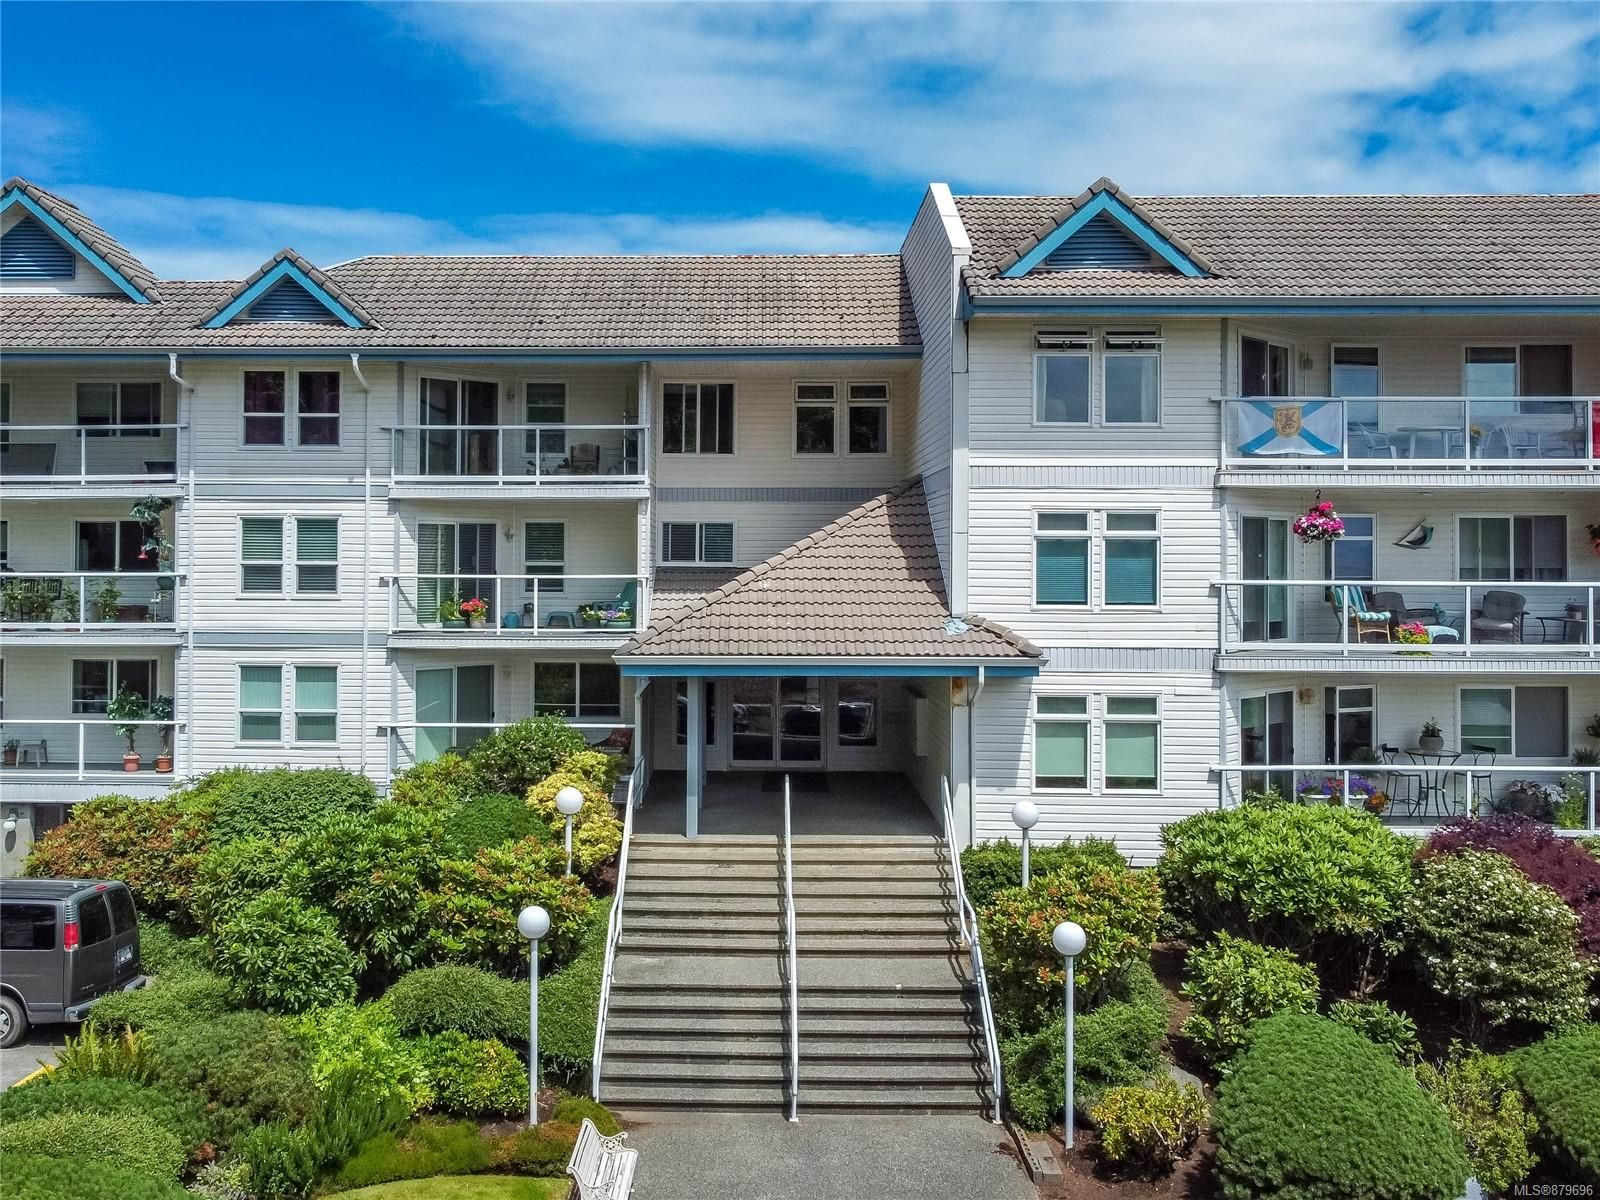 Photo 2: Photos: 219 390 S Island Hwy in : CR Campbell River West Condo for sale (Campbell River)  : MLS®# 879696